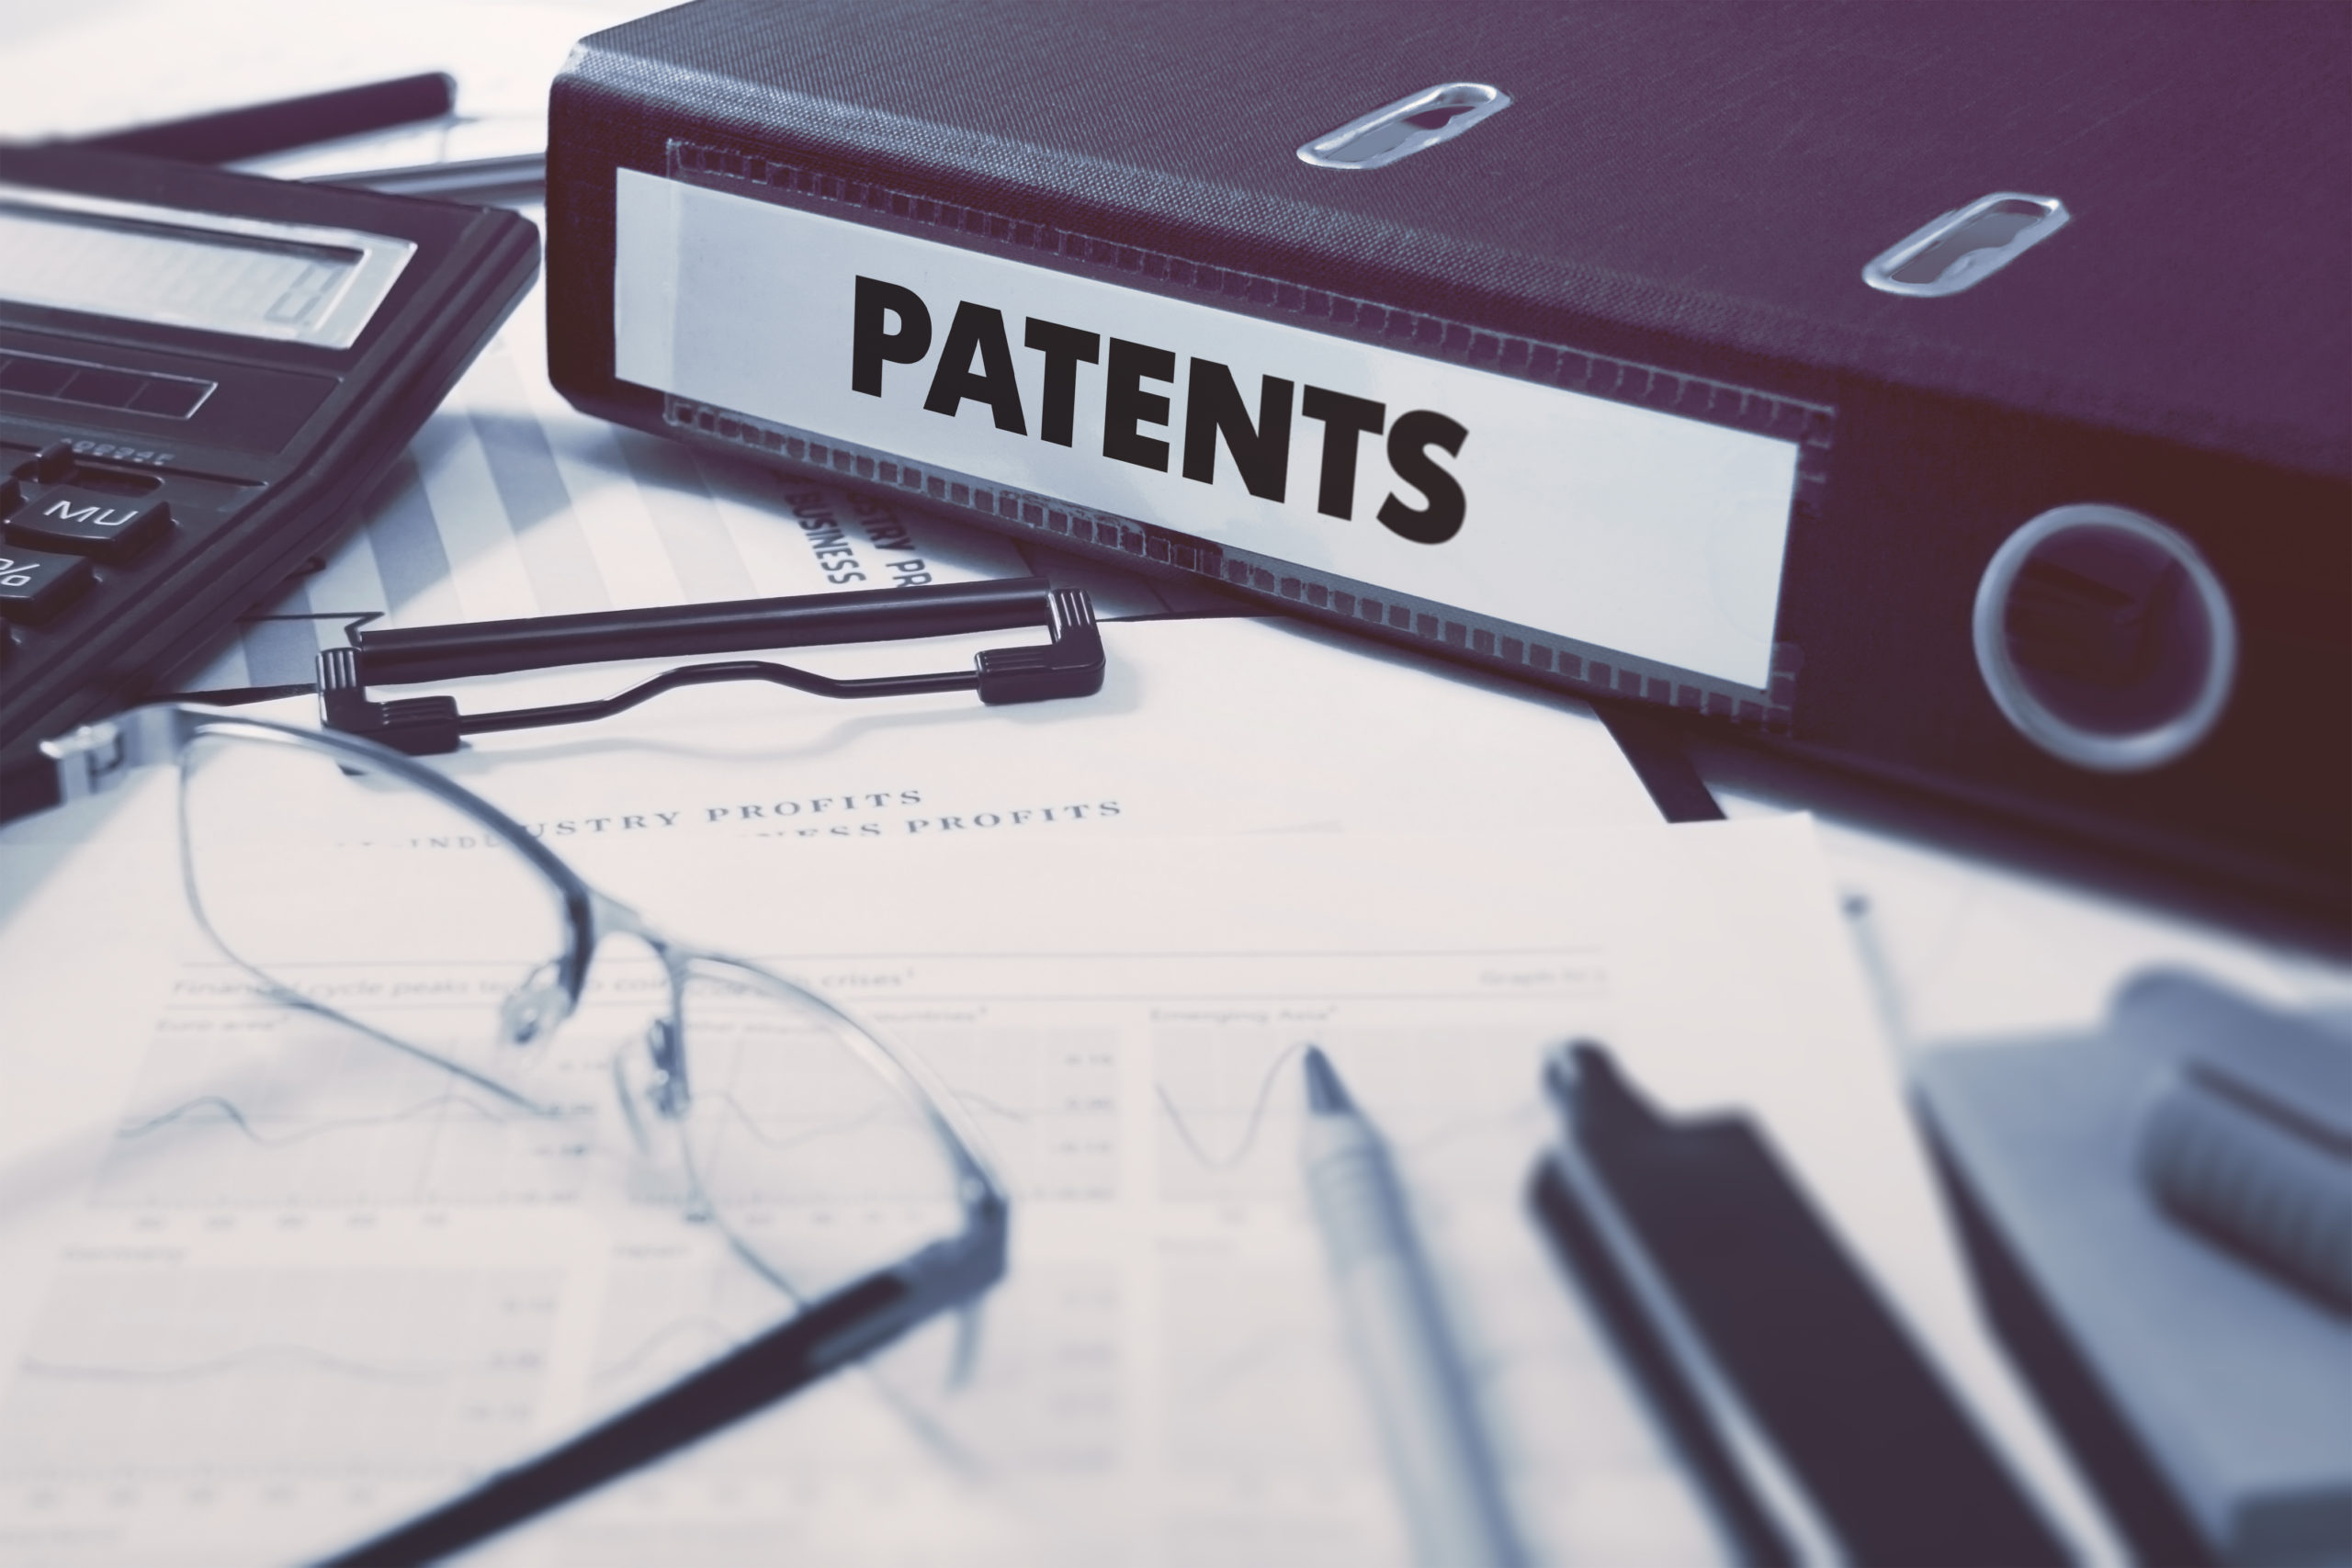 California patent prosecution and application filing